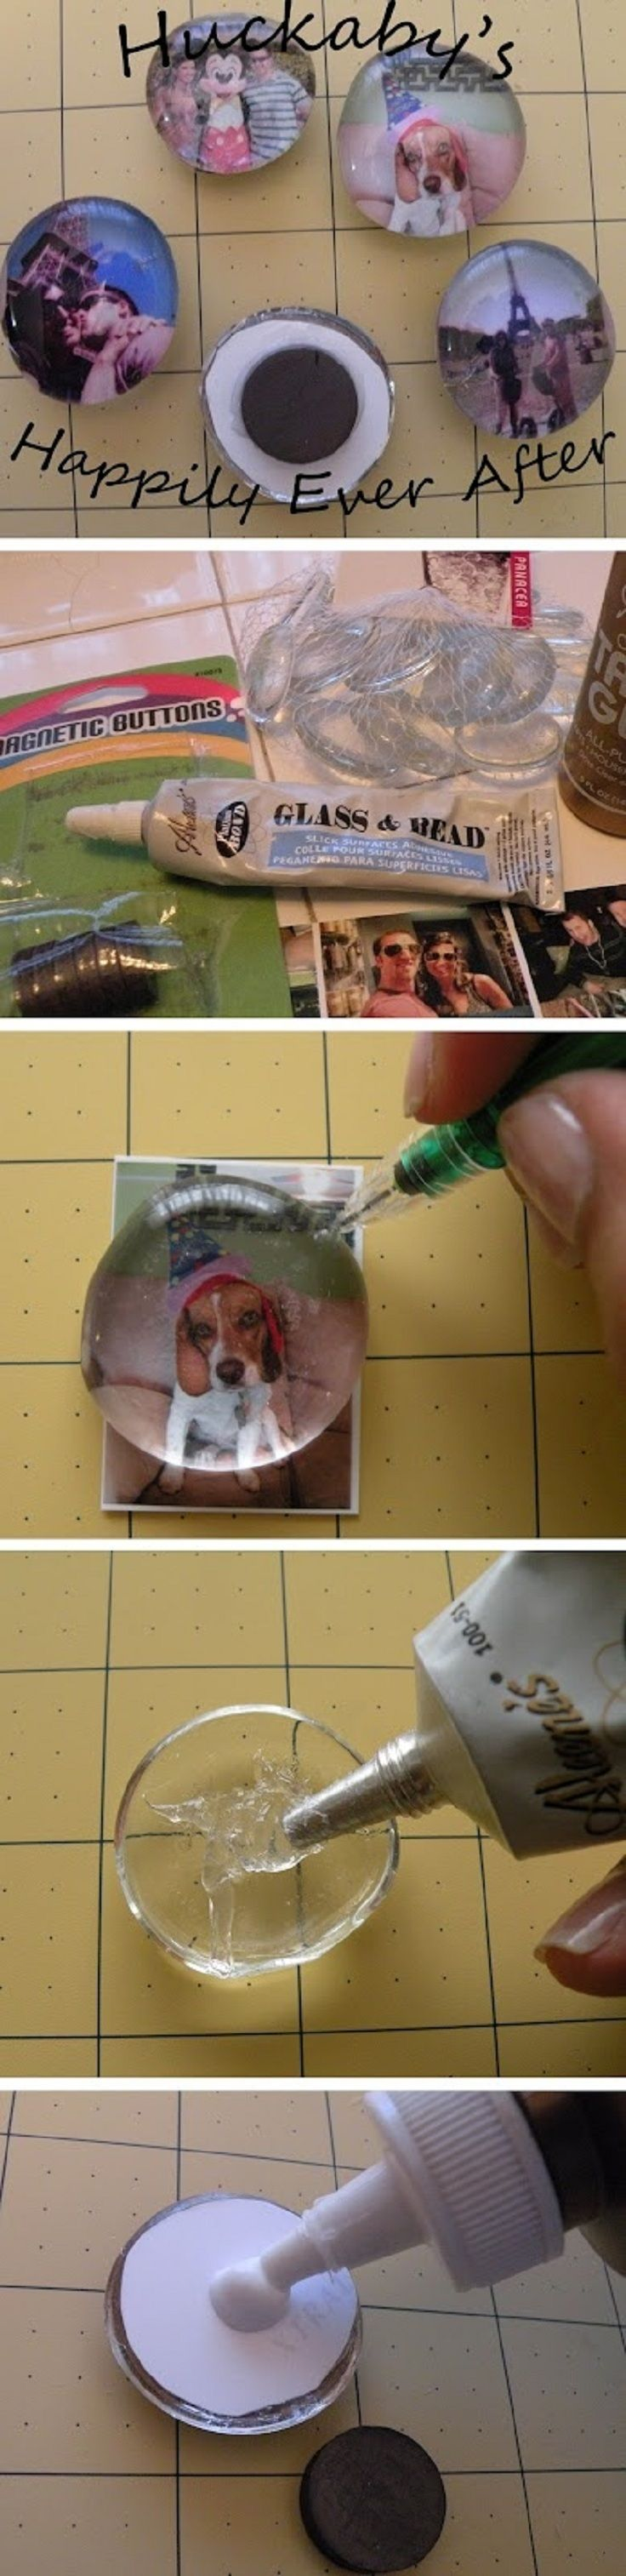 DIY Photo Magnets from Glass Gems or Marbles...also cute with scrapbook paper for decorative magnets!